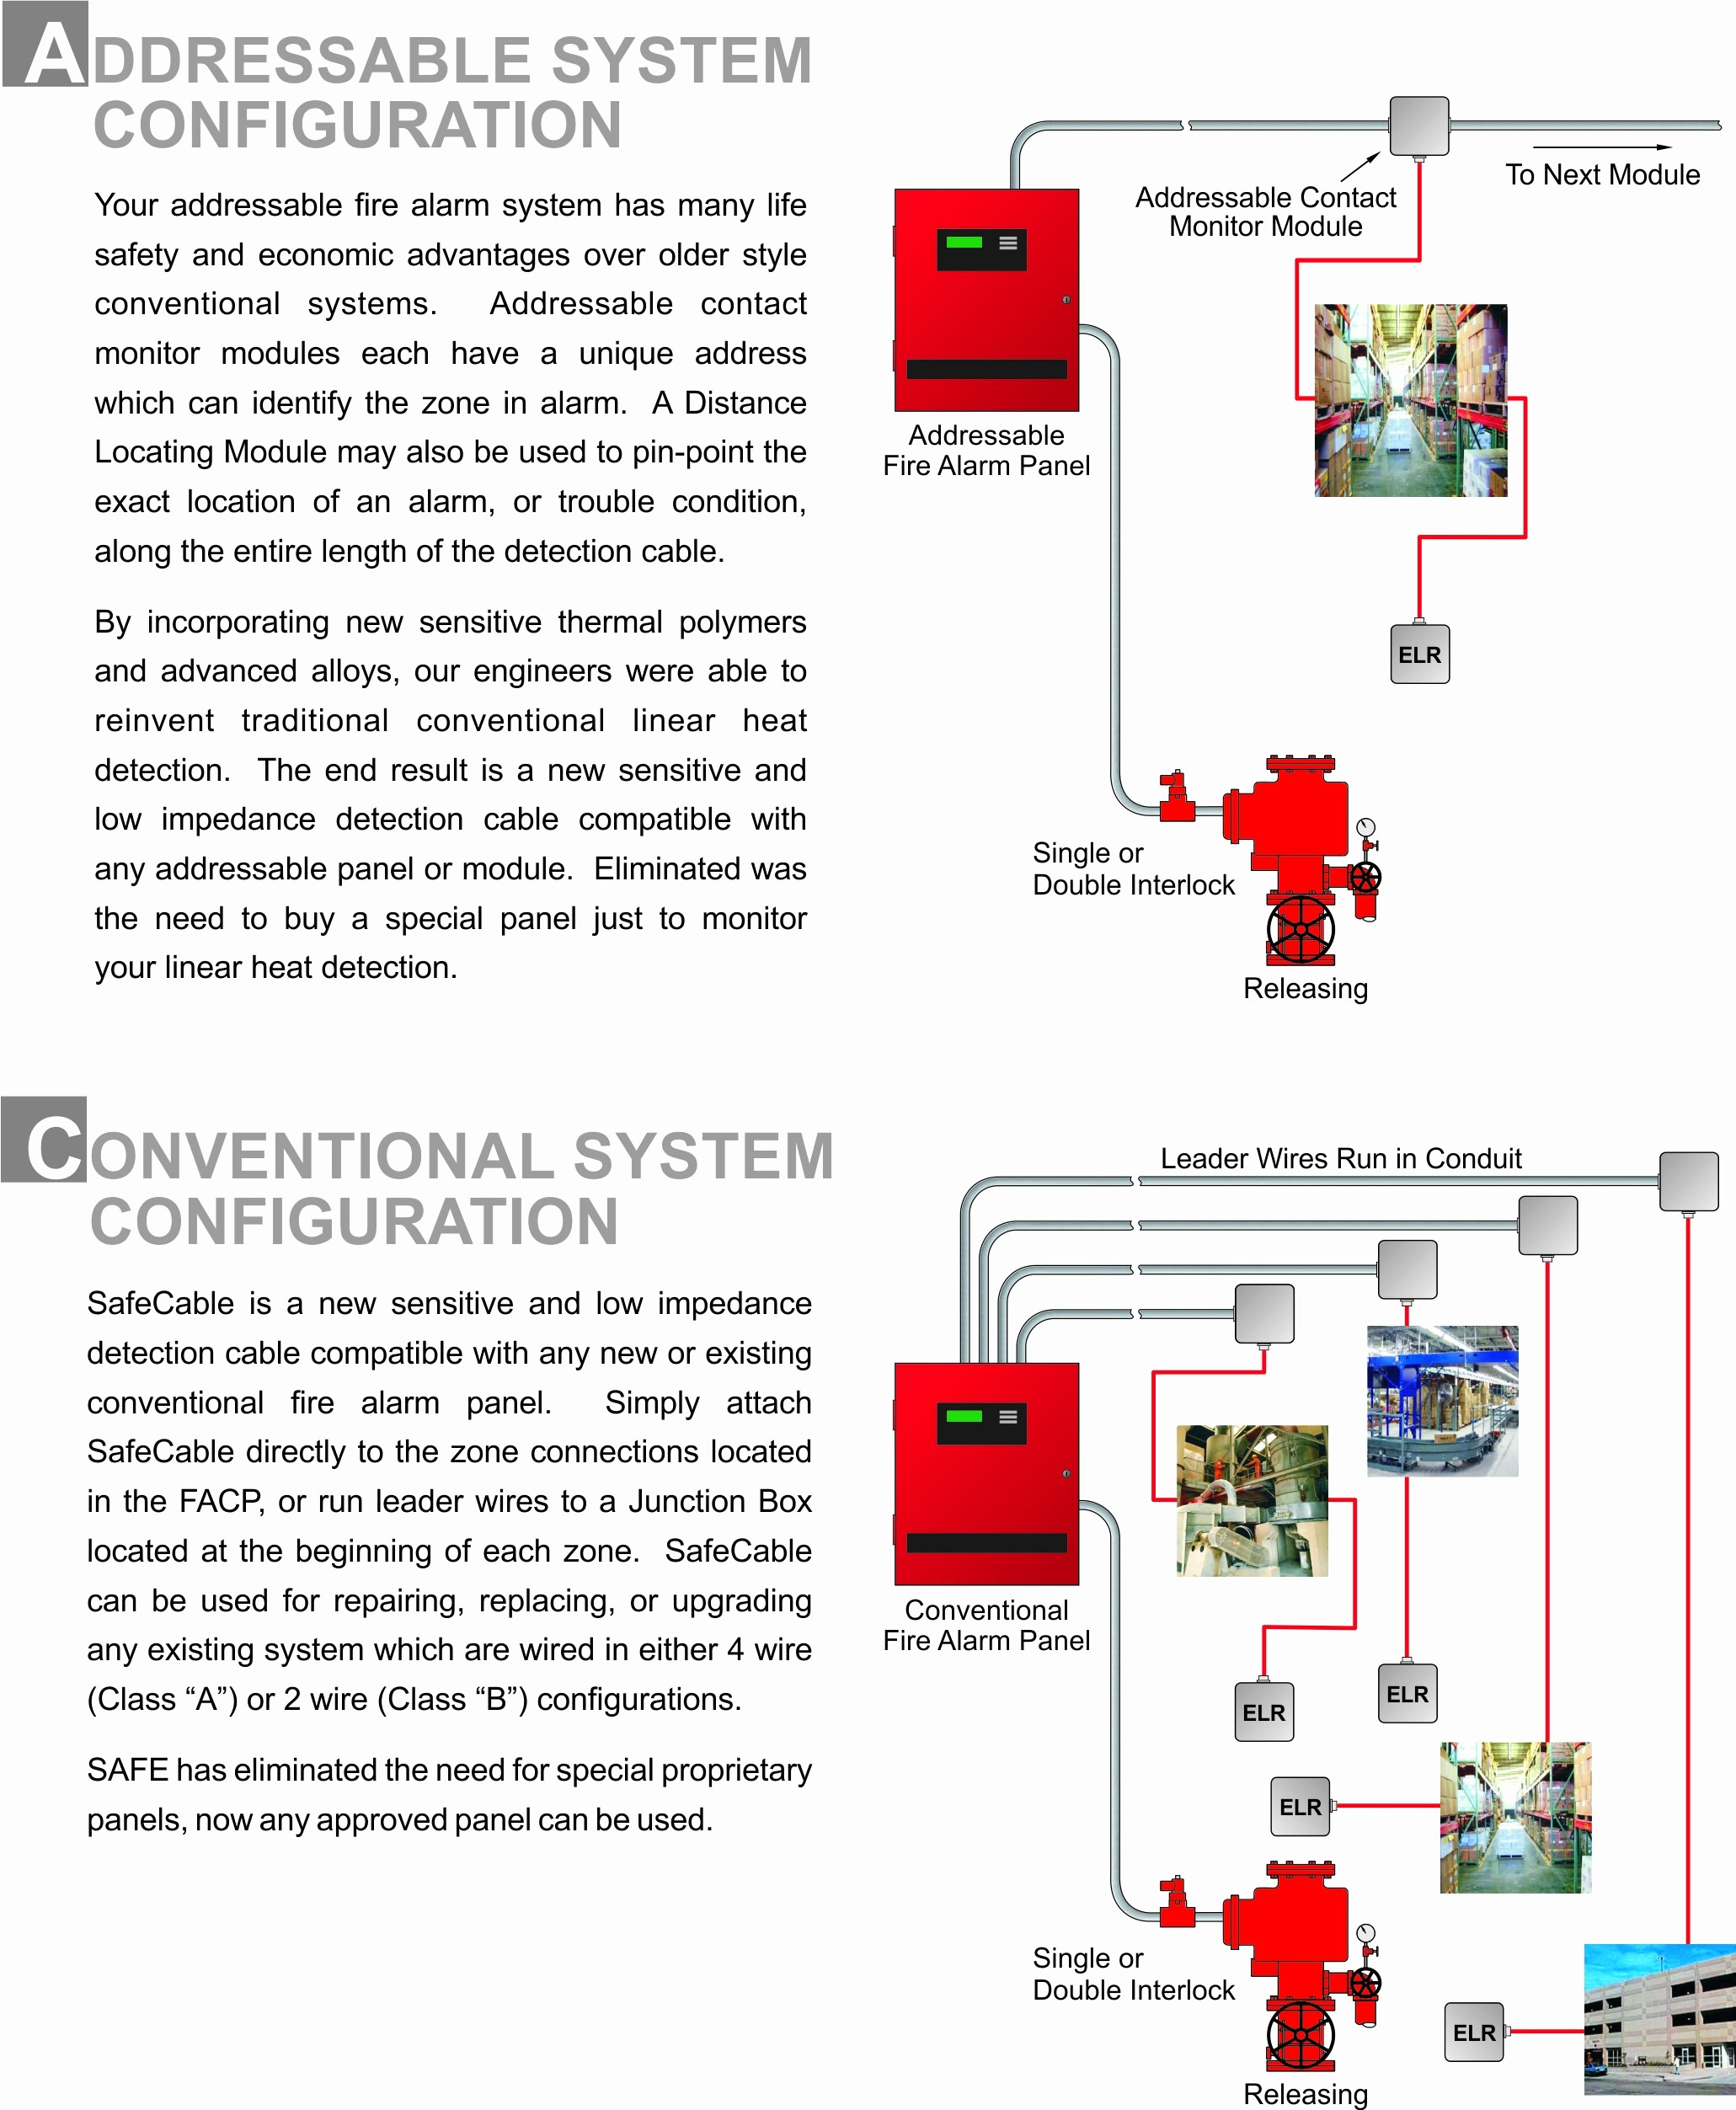 bulldog security alarm wiring diagram Collection-Wiring Diagram For Alarm System In Car Valid Wiring Diagram Car Alarm Wiring Diagram Unique Bulldog Security 2-k